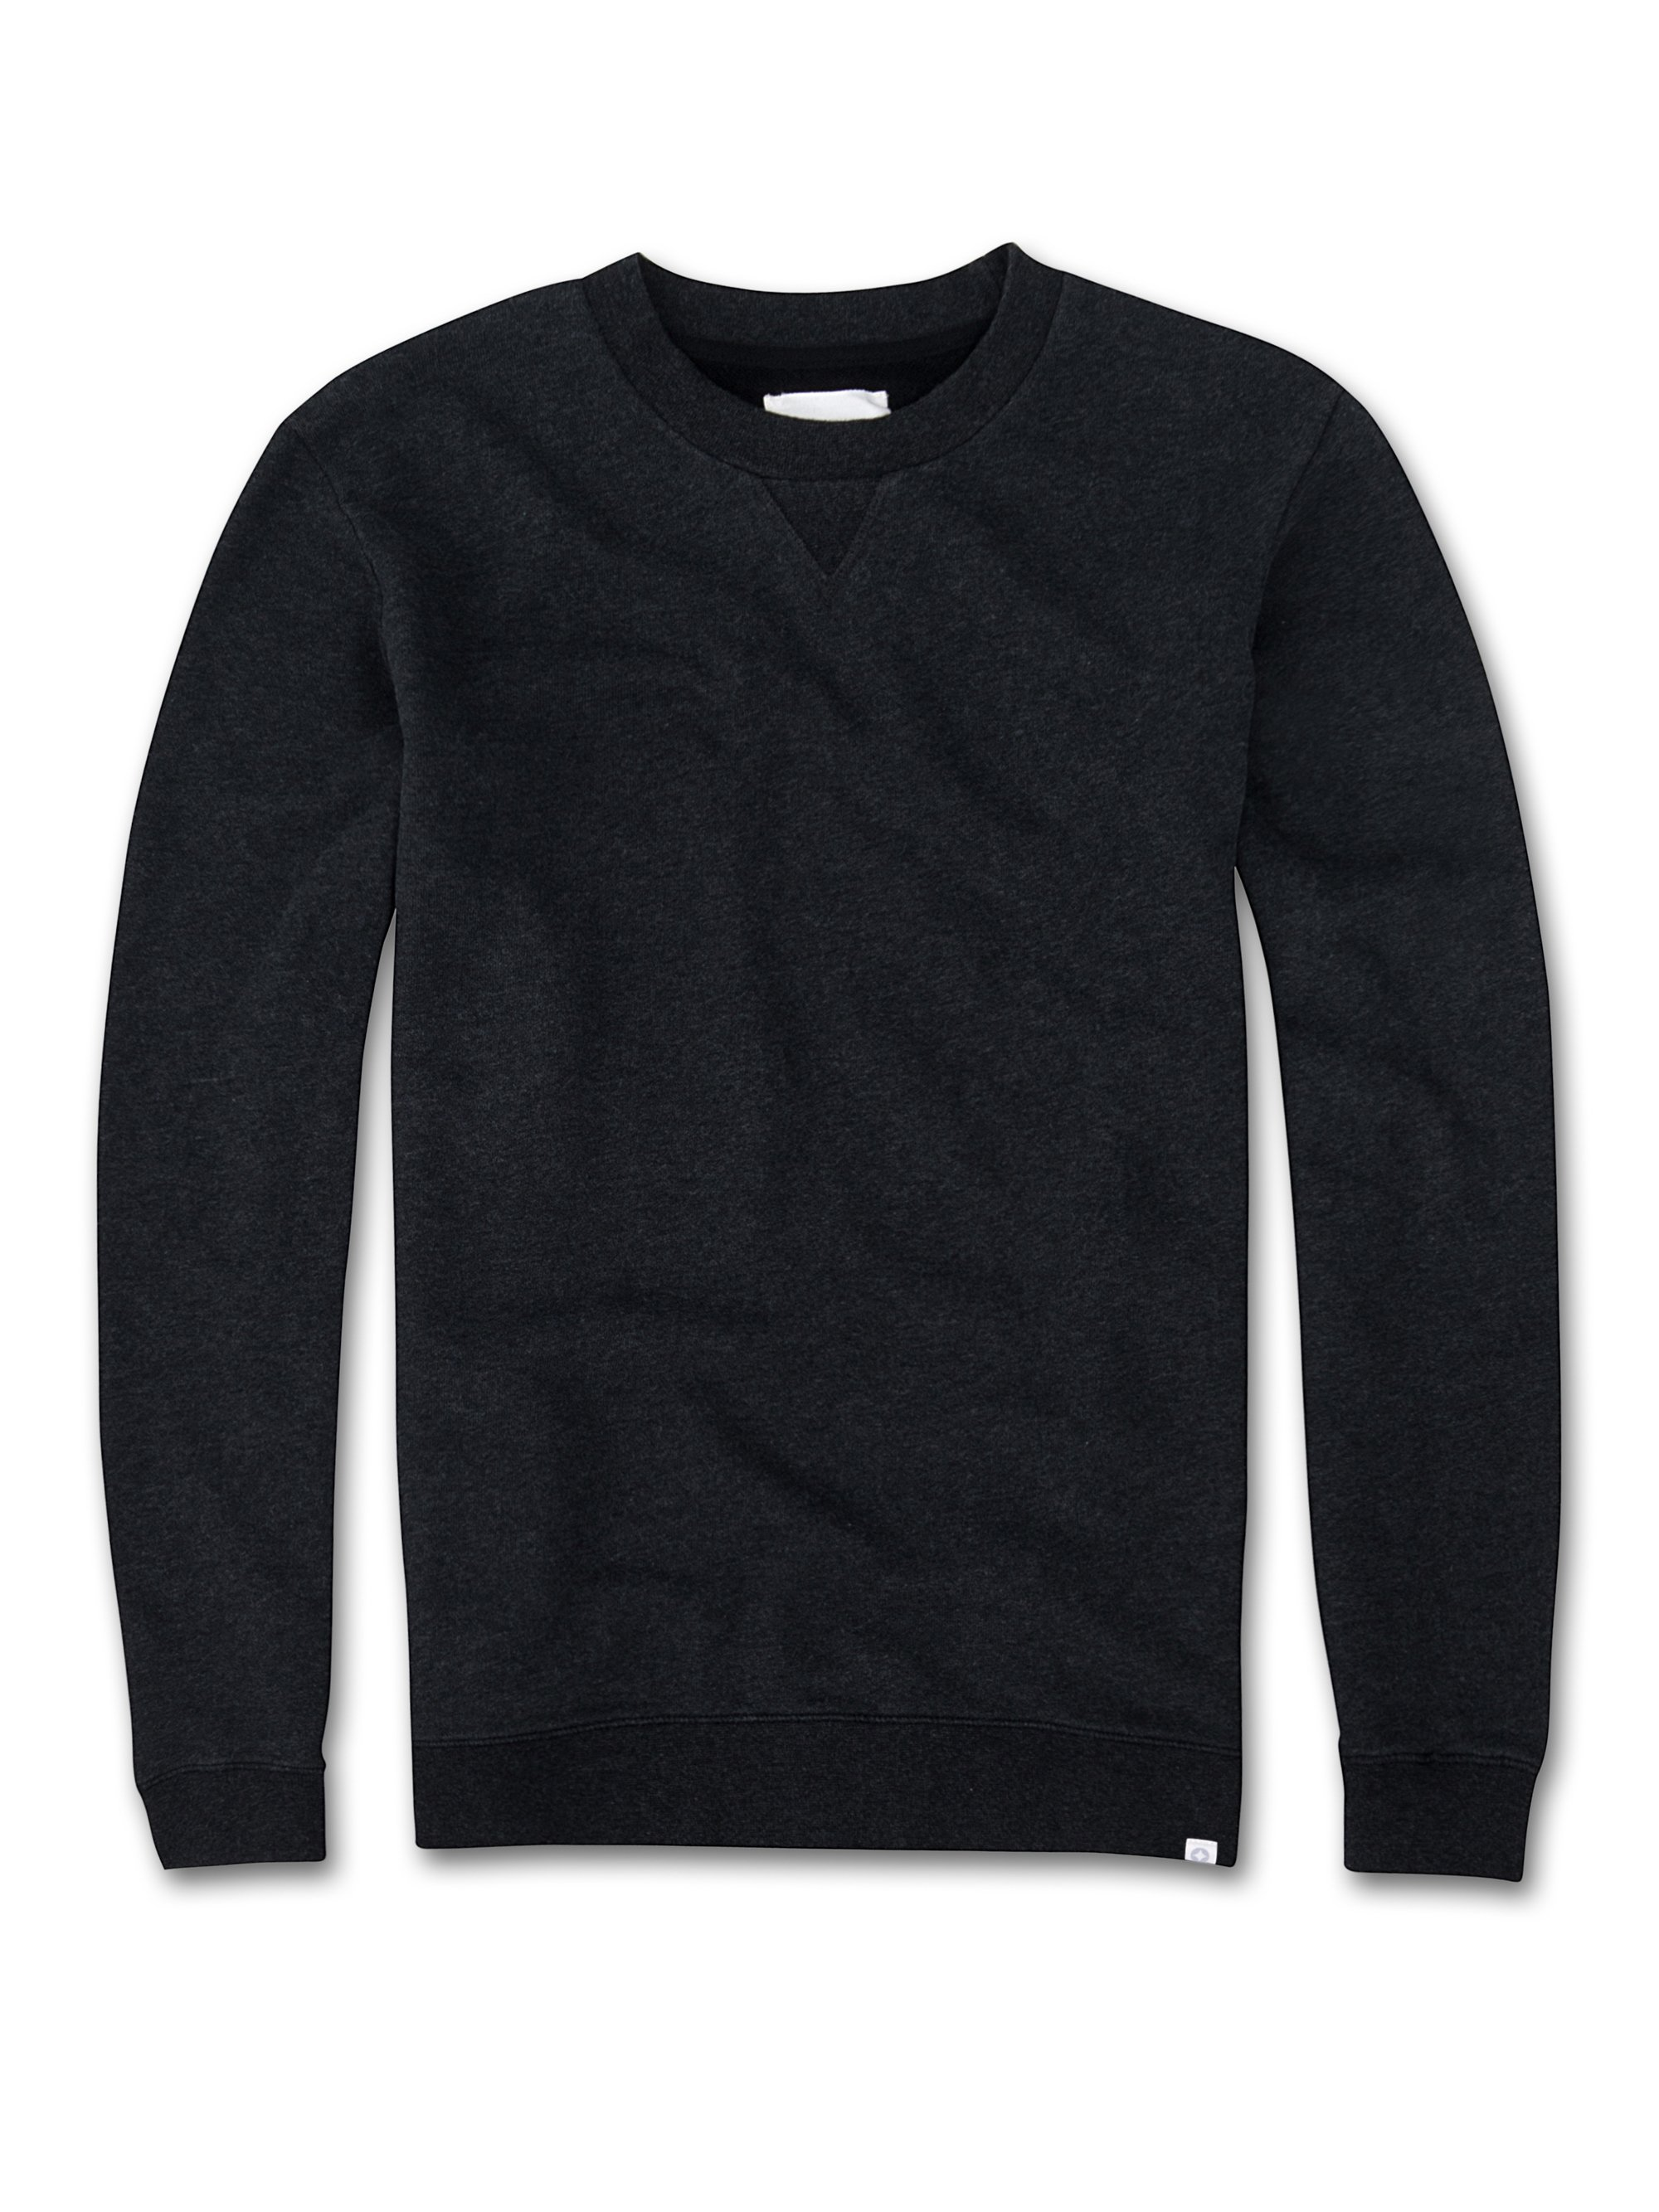 Men's Sweatshirt Devon Loopback Cotton Charcoal